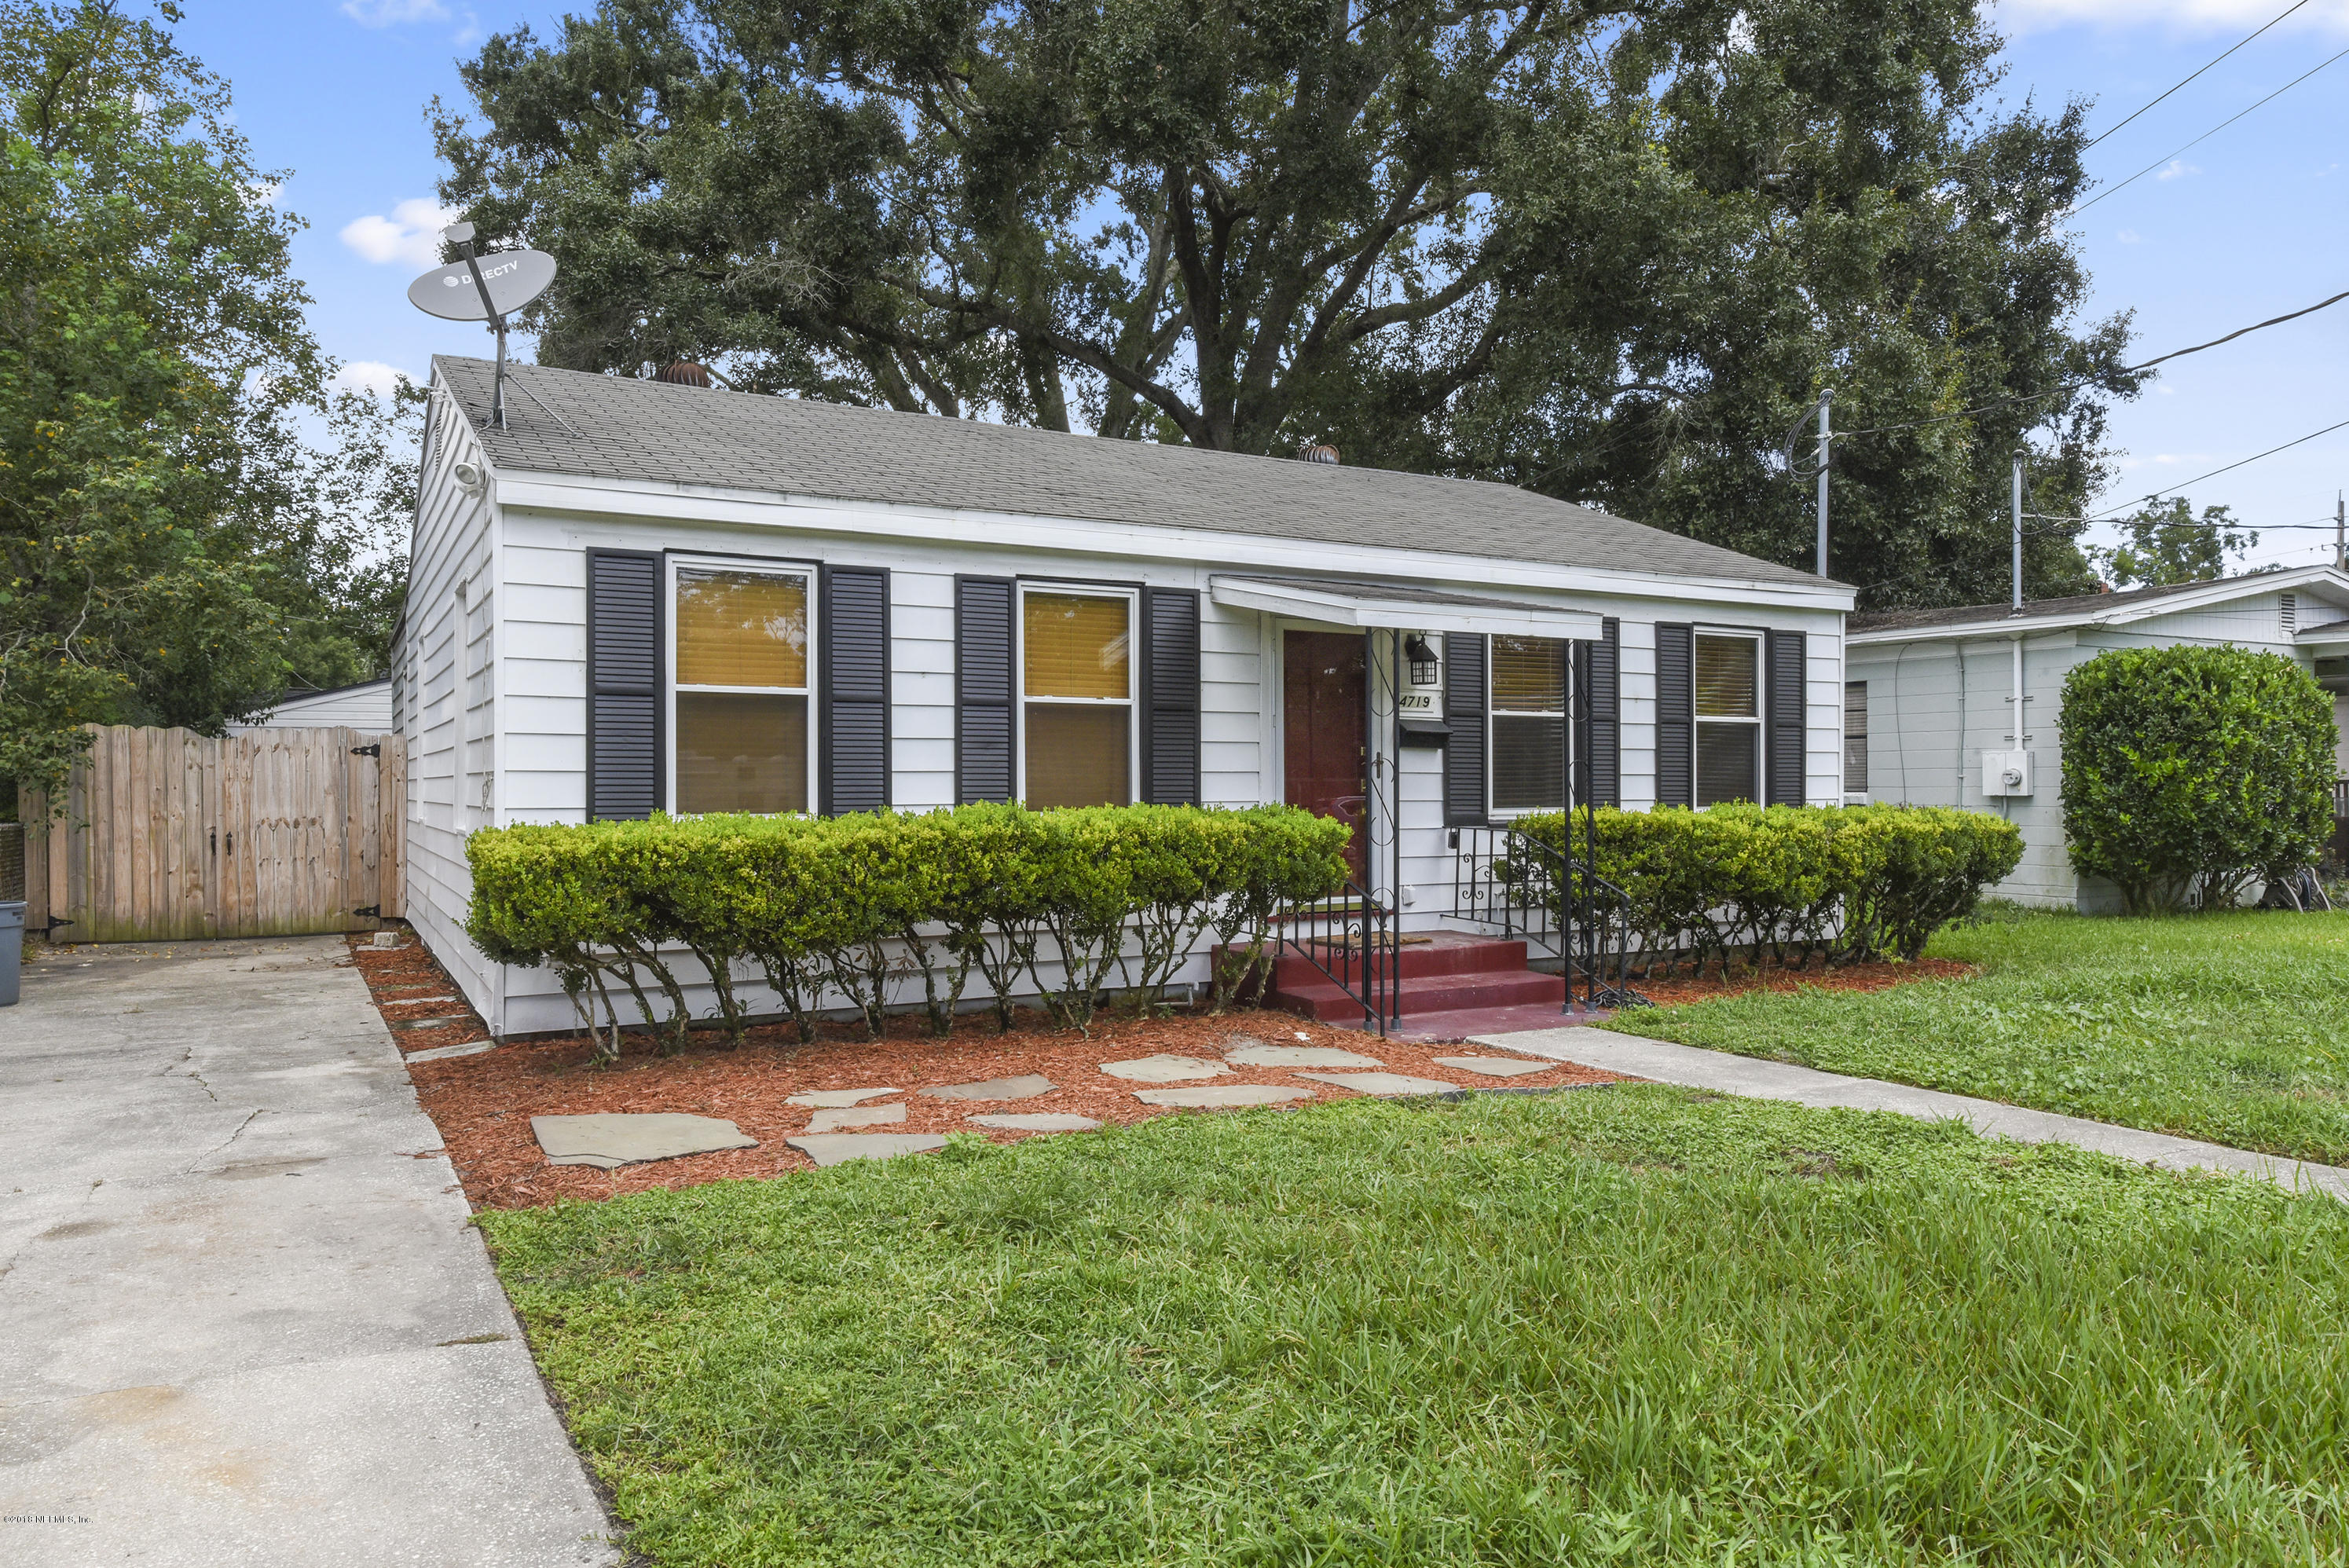 4719 LAWNVIEW, JACKSONVILLE, FLORIDA 32205, 3 Bedrooms Bedrooms, ,2 BathroomsBathrooms,Residential - single family,For sale,LAWNVIEW,953223